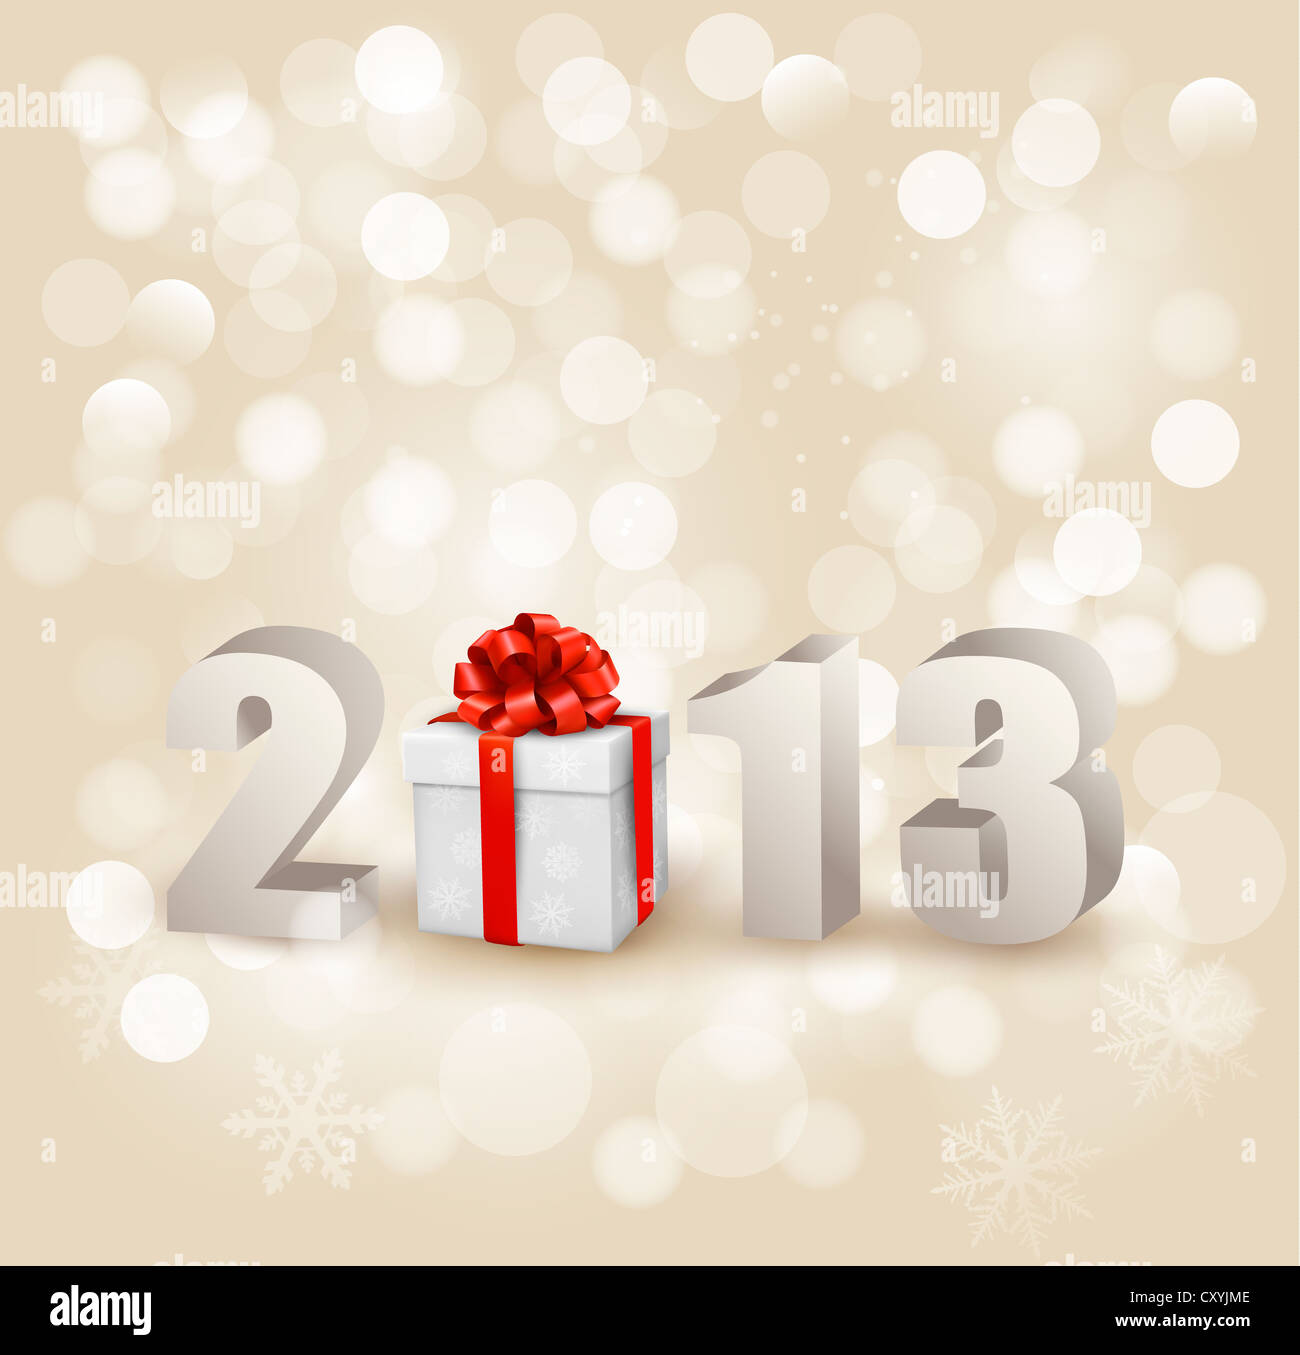 Happy new year 2013! New year design template. - Stock Image